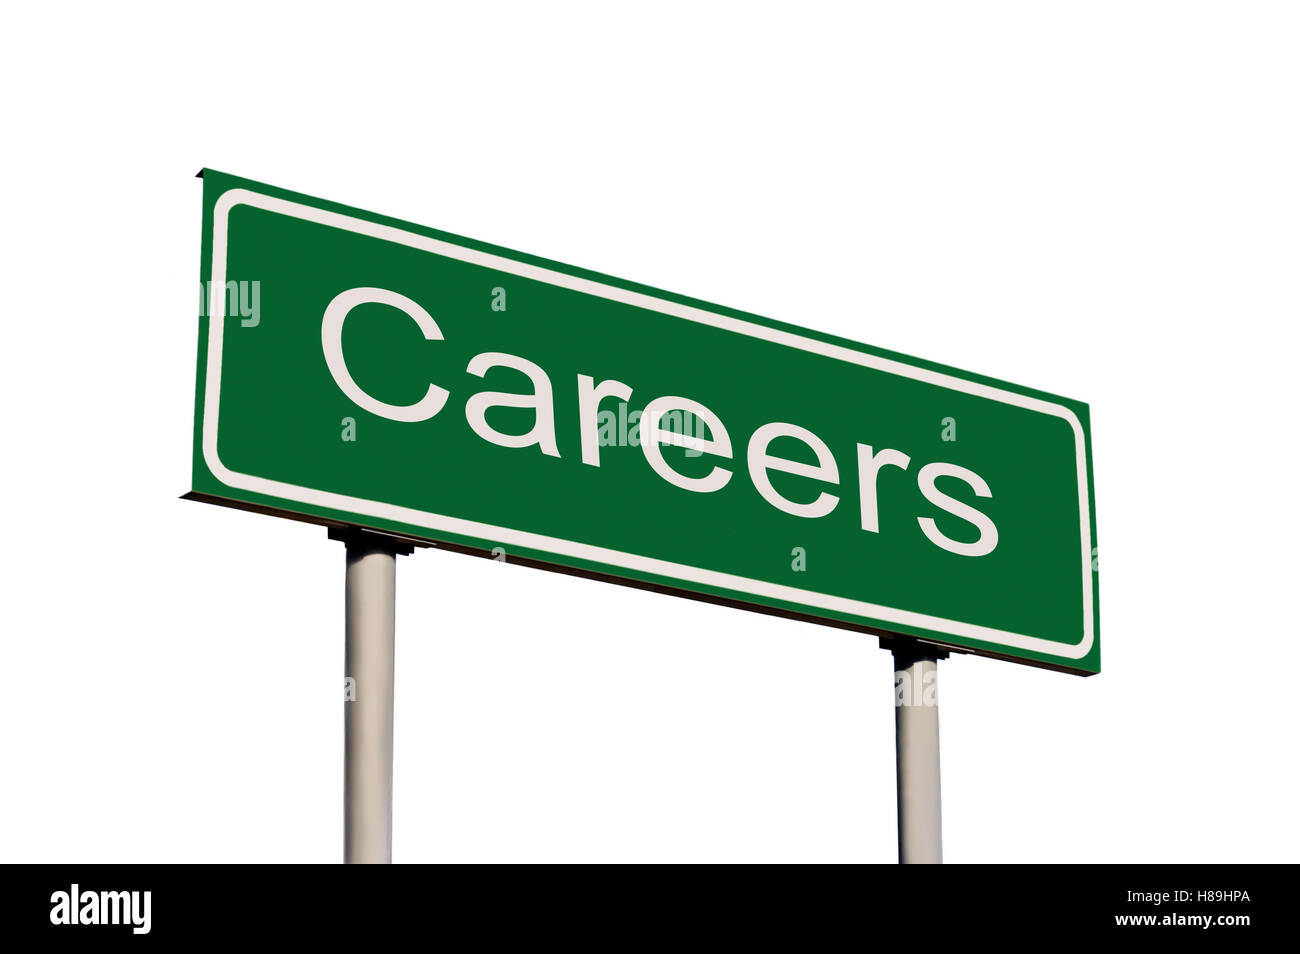 Careers Green Road Sign, Isolated White Frame - Stock Image